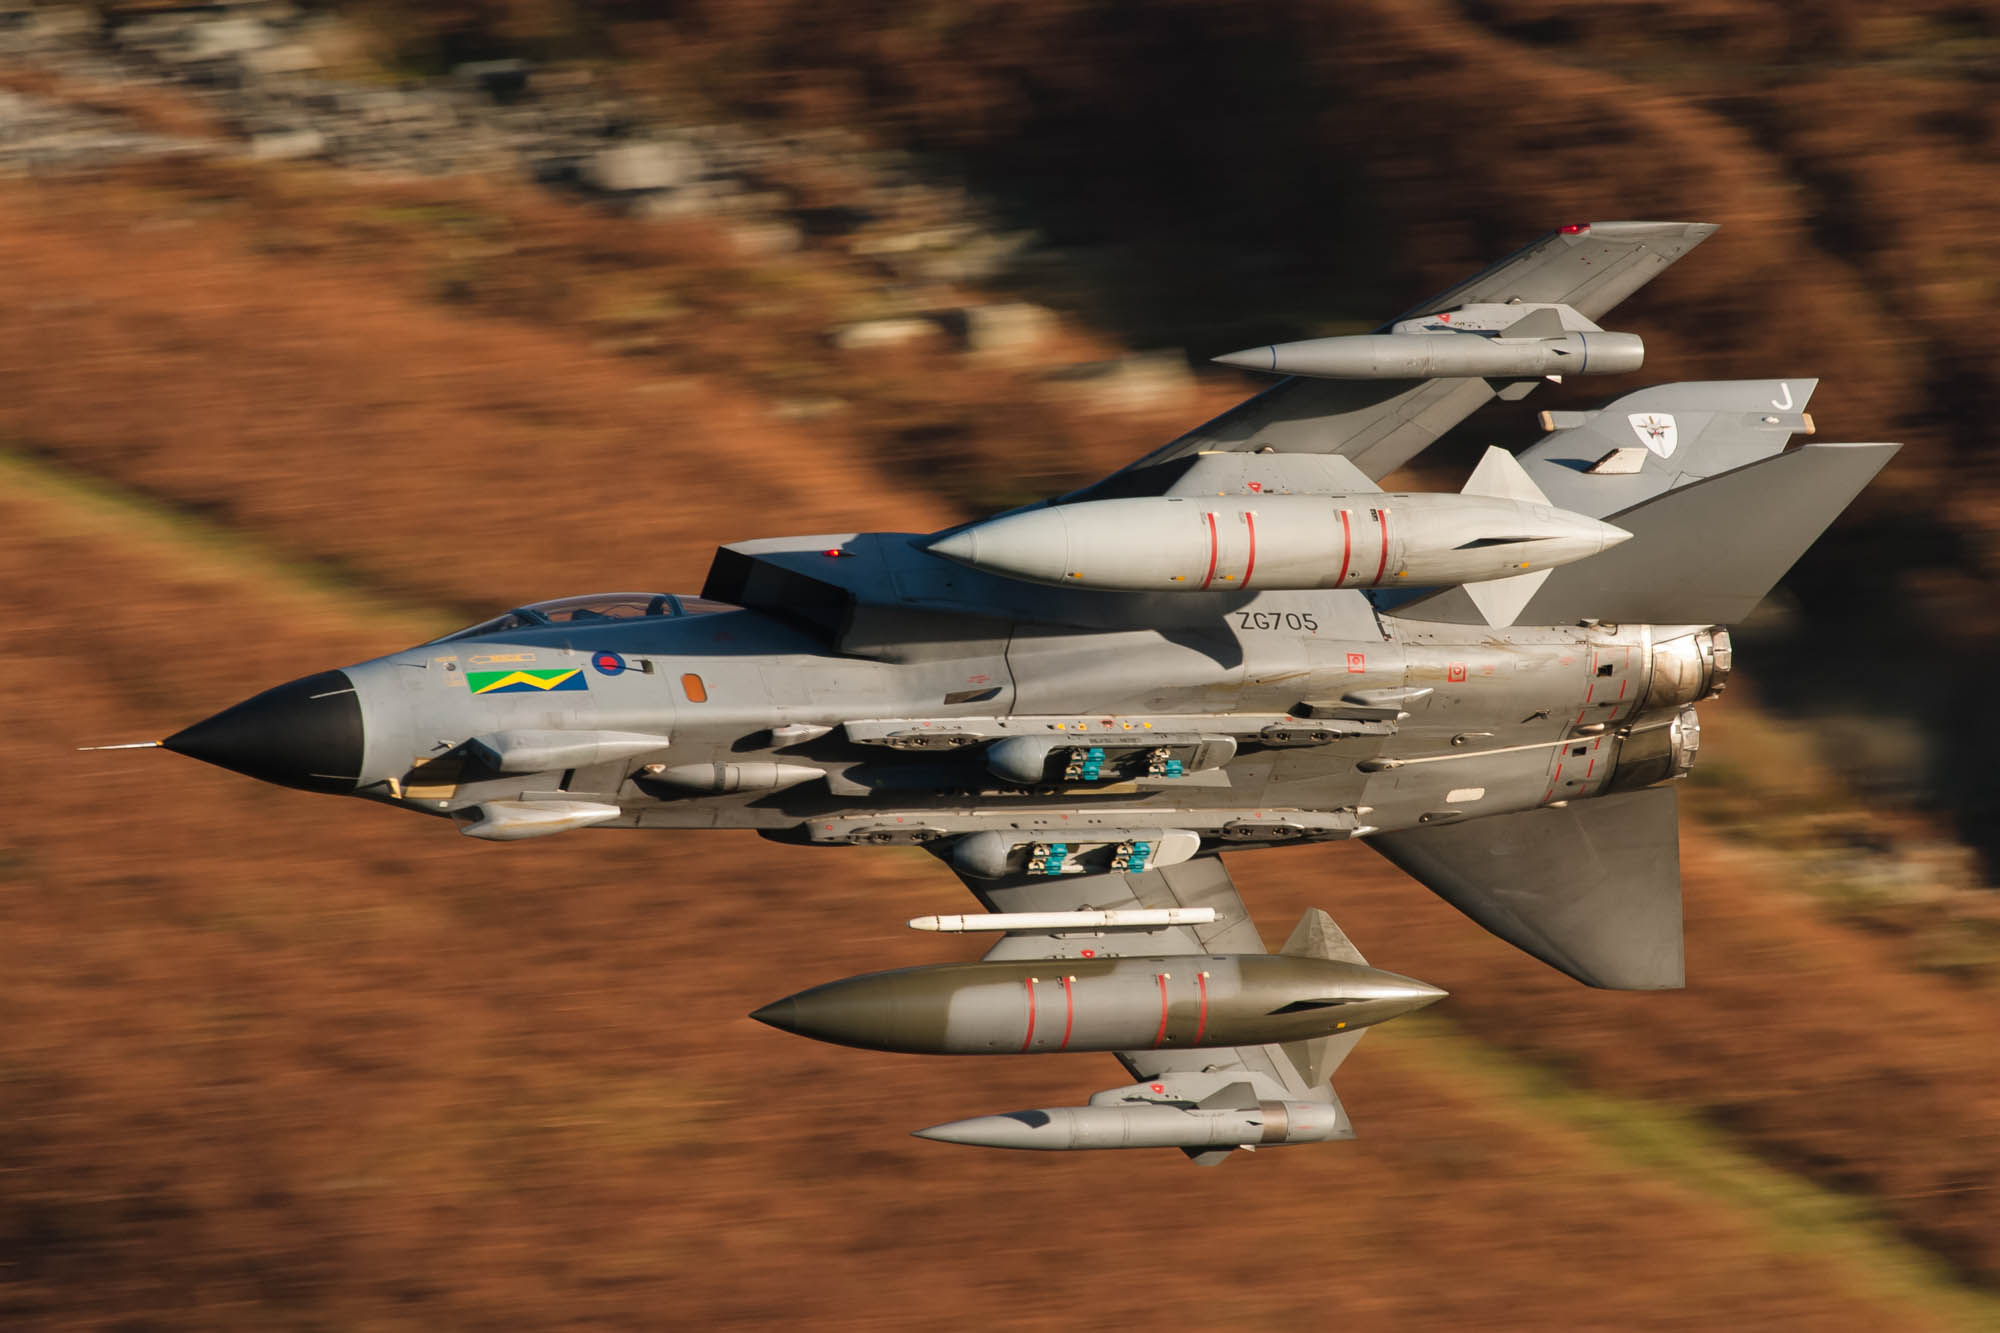 Aviation Photography RAF 13 Squadron